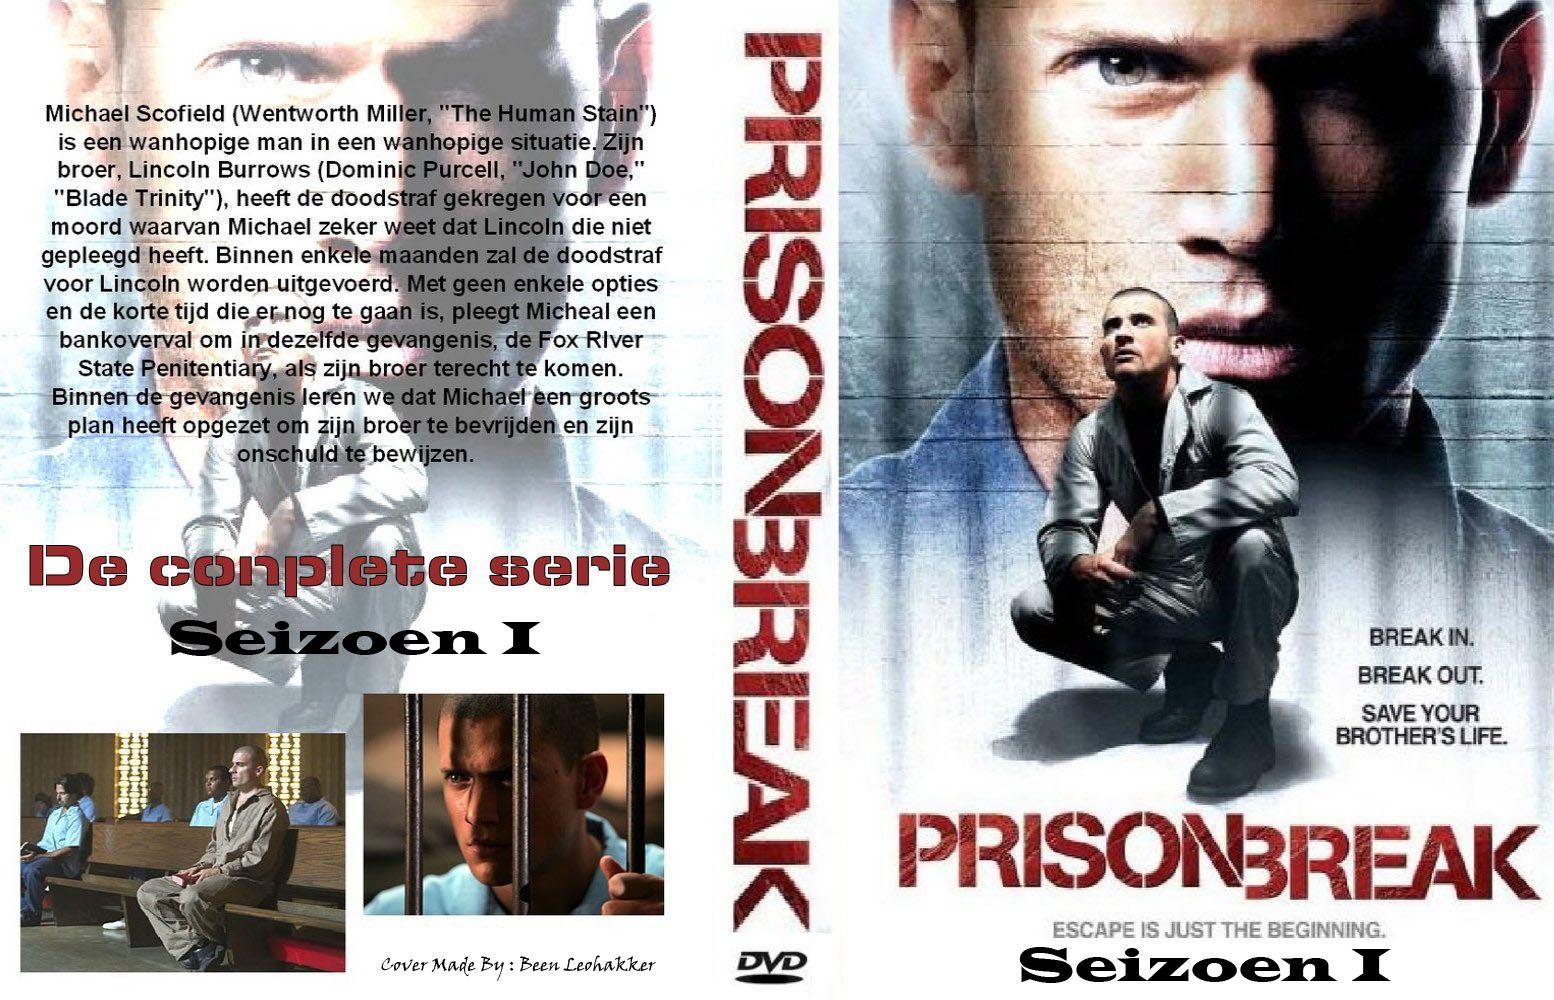 Prison Break Season 1 Dvd Nl Custom Dvd Covers Cover Century Over 500 000 Album Art Covers For Free